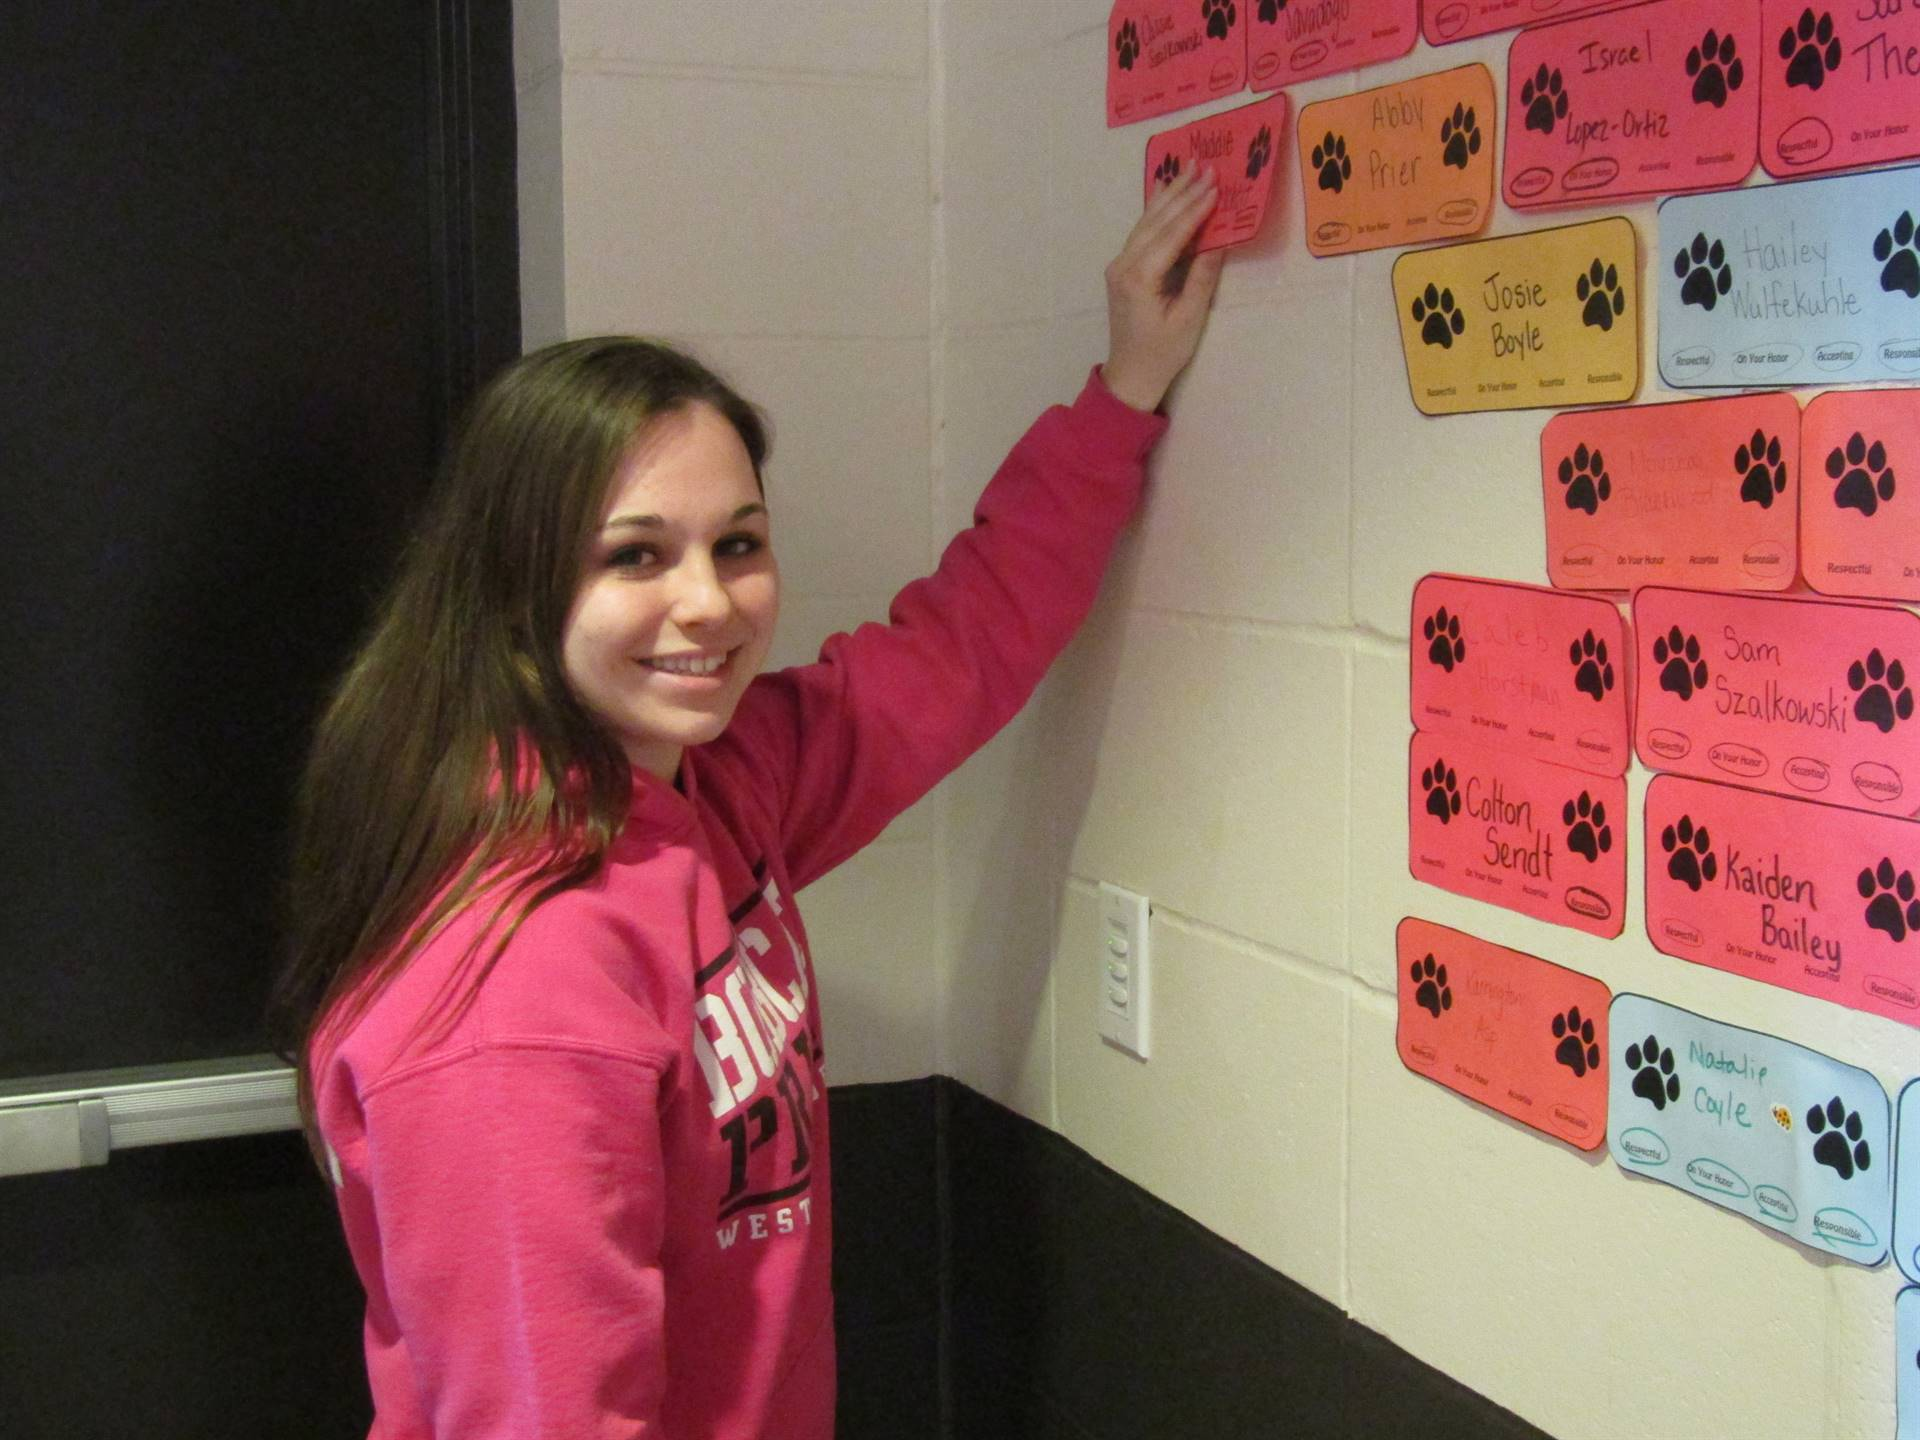 Wall of fame student hangs name on wall